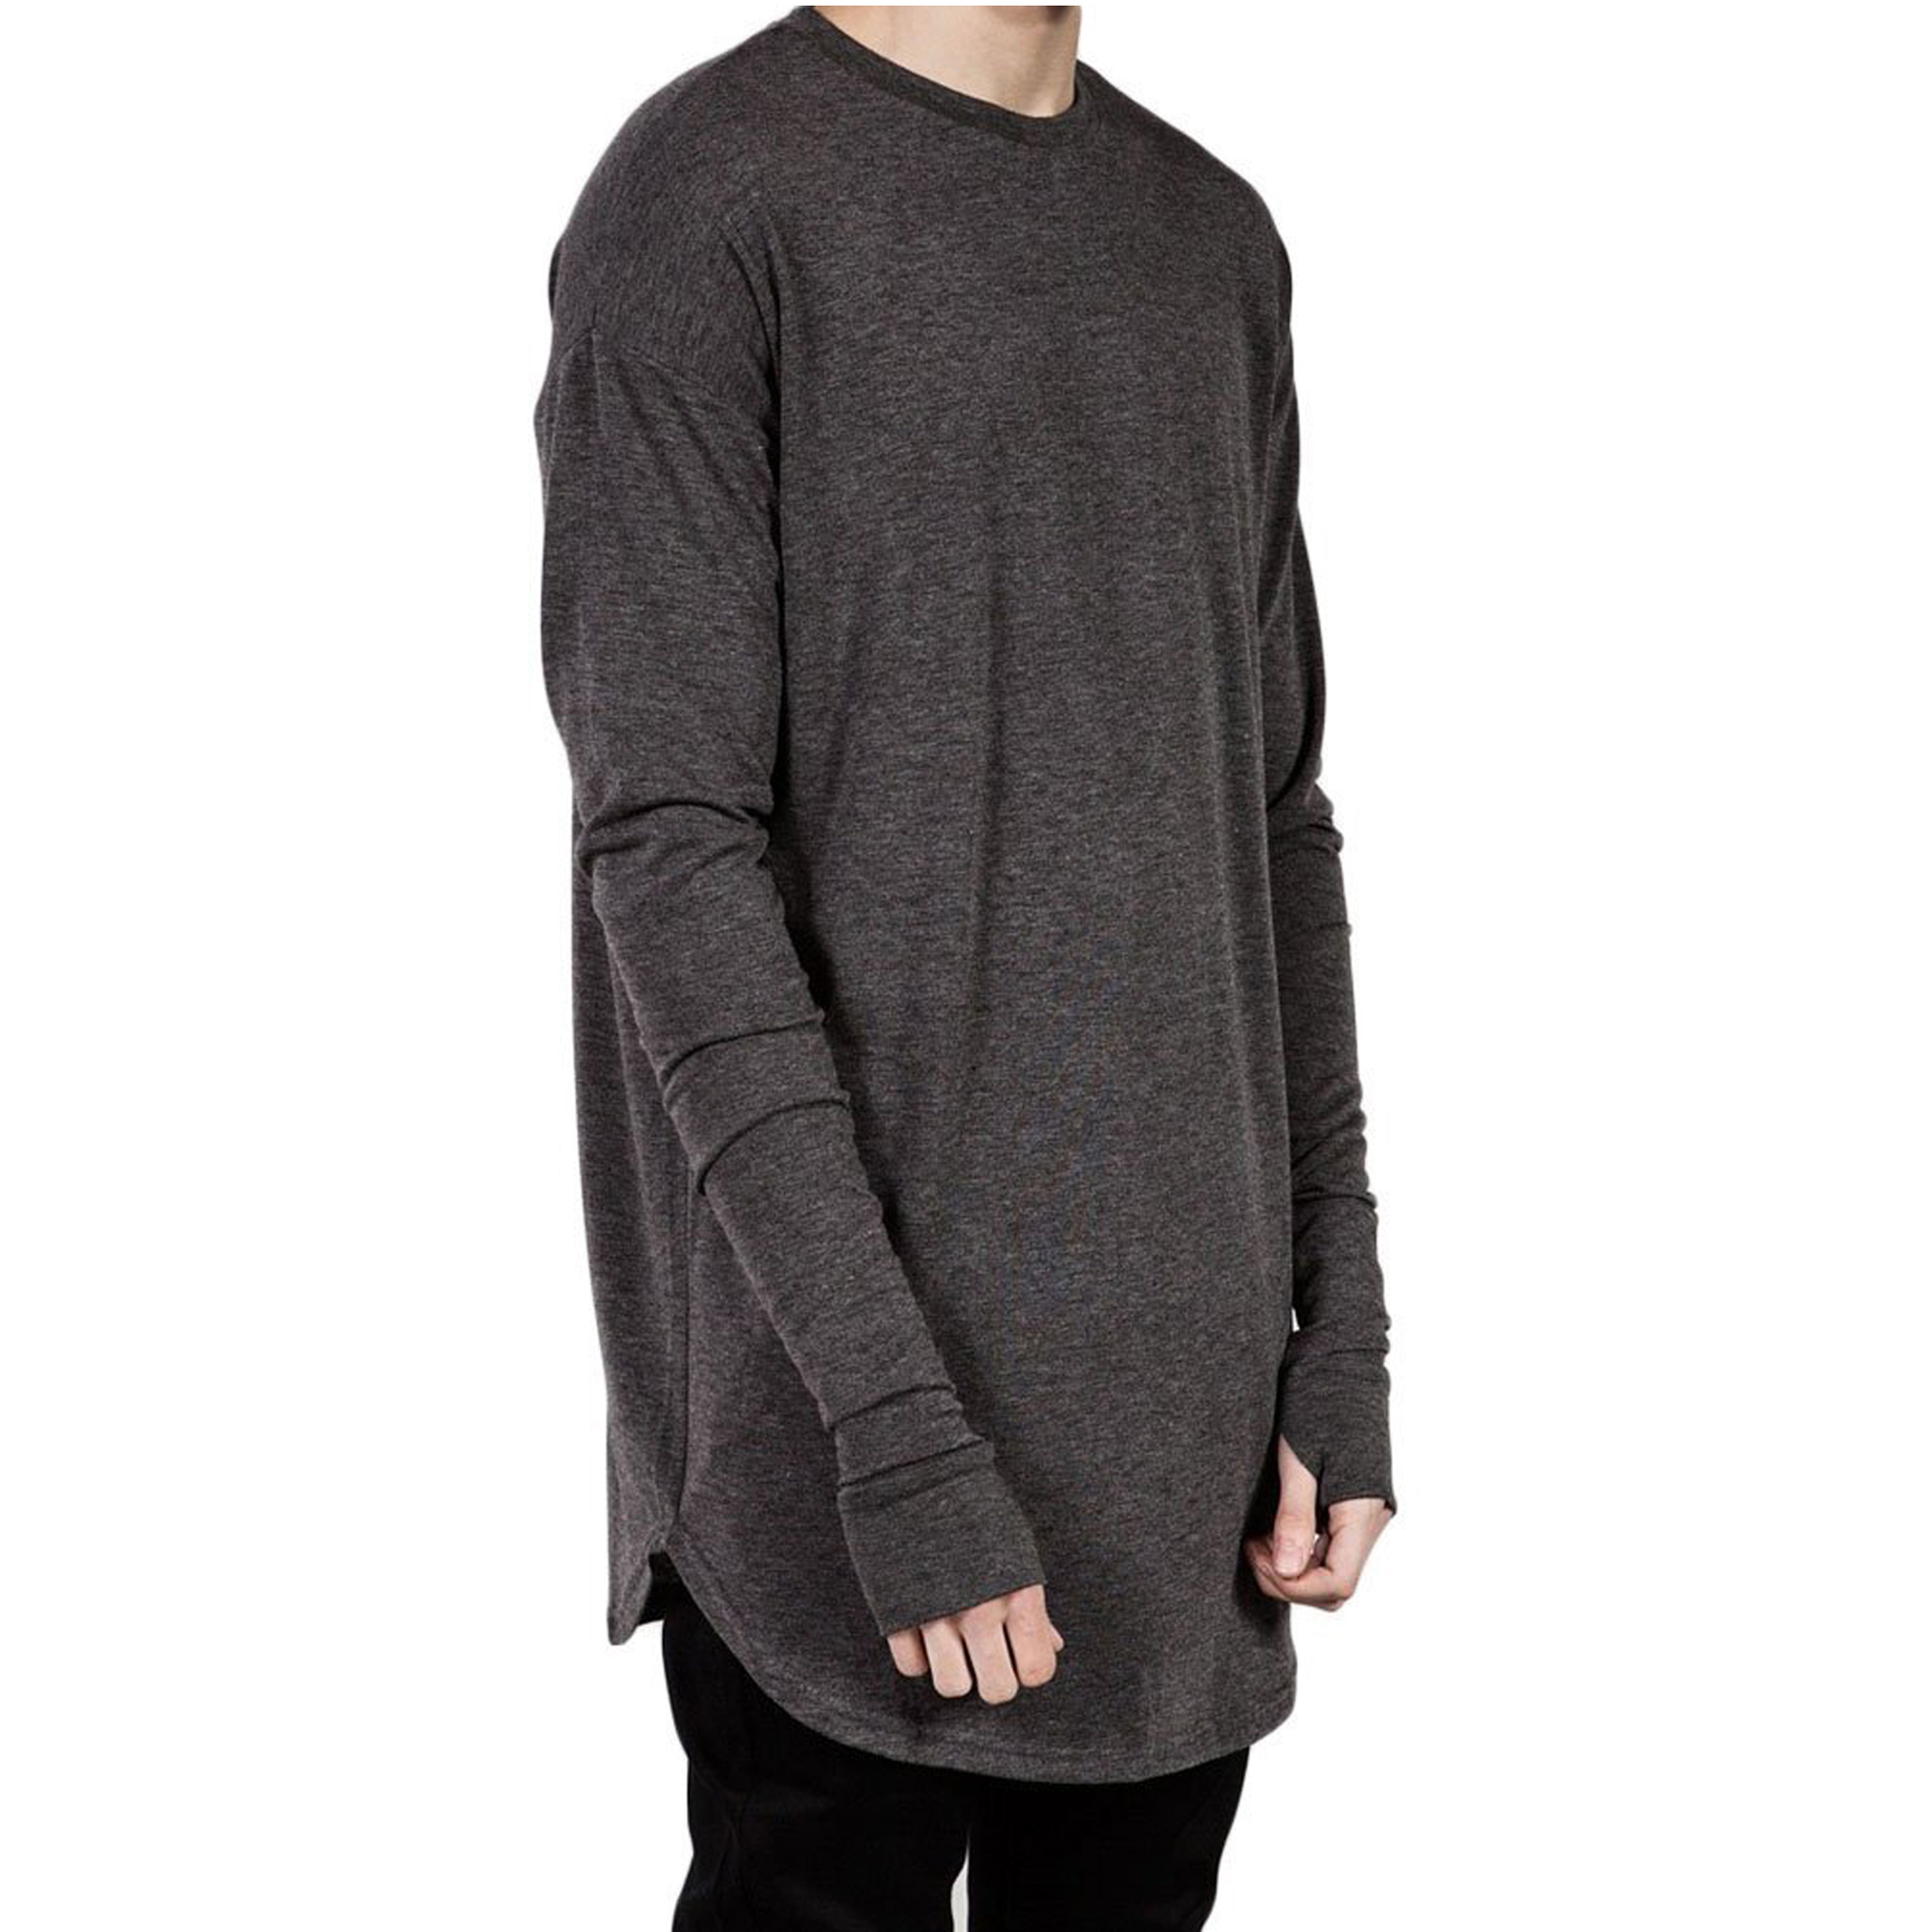 PAUSE Grey Solid Cotton Round Neck Slim Fit Full Sleeve Men's T-Shirt